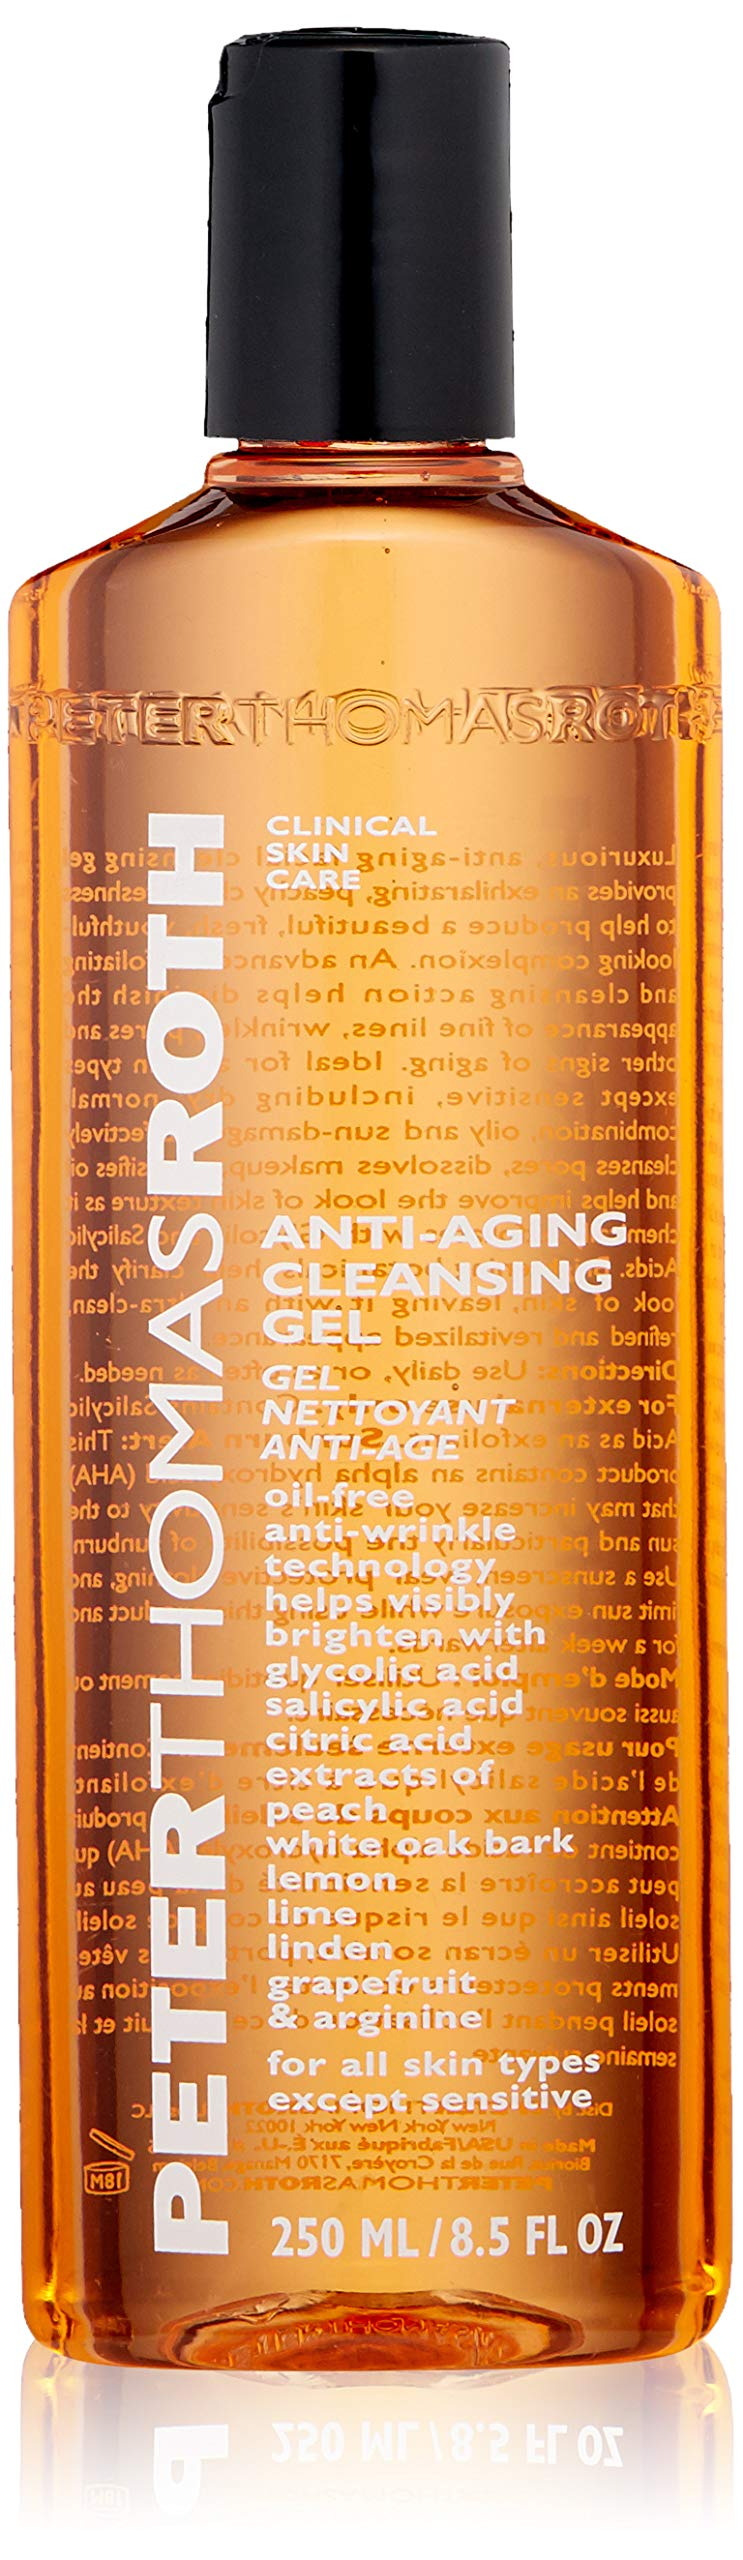 Peter Thomas Roth Anti-aging Cleansing Gel, 8.5 fl. oz. by Peter Thomas Roth